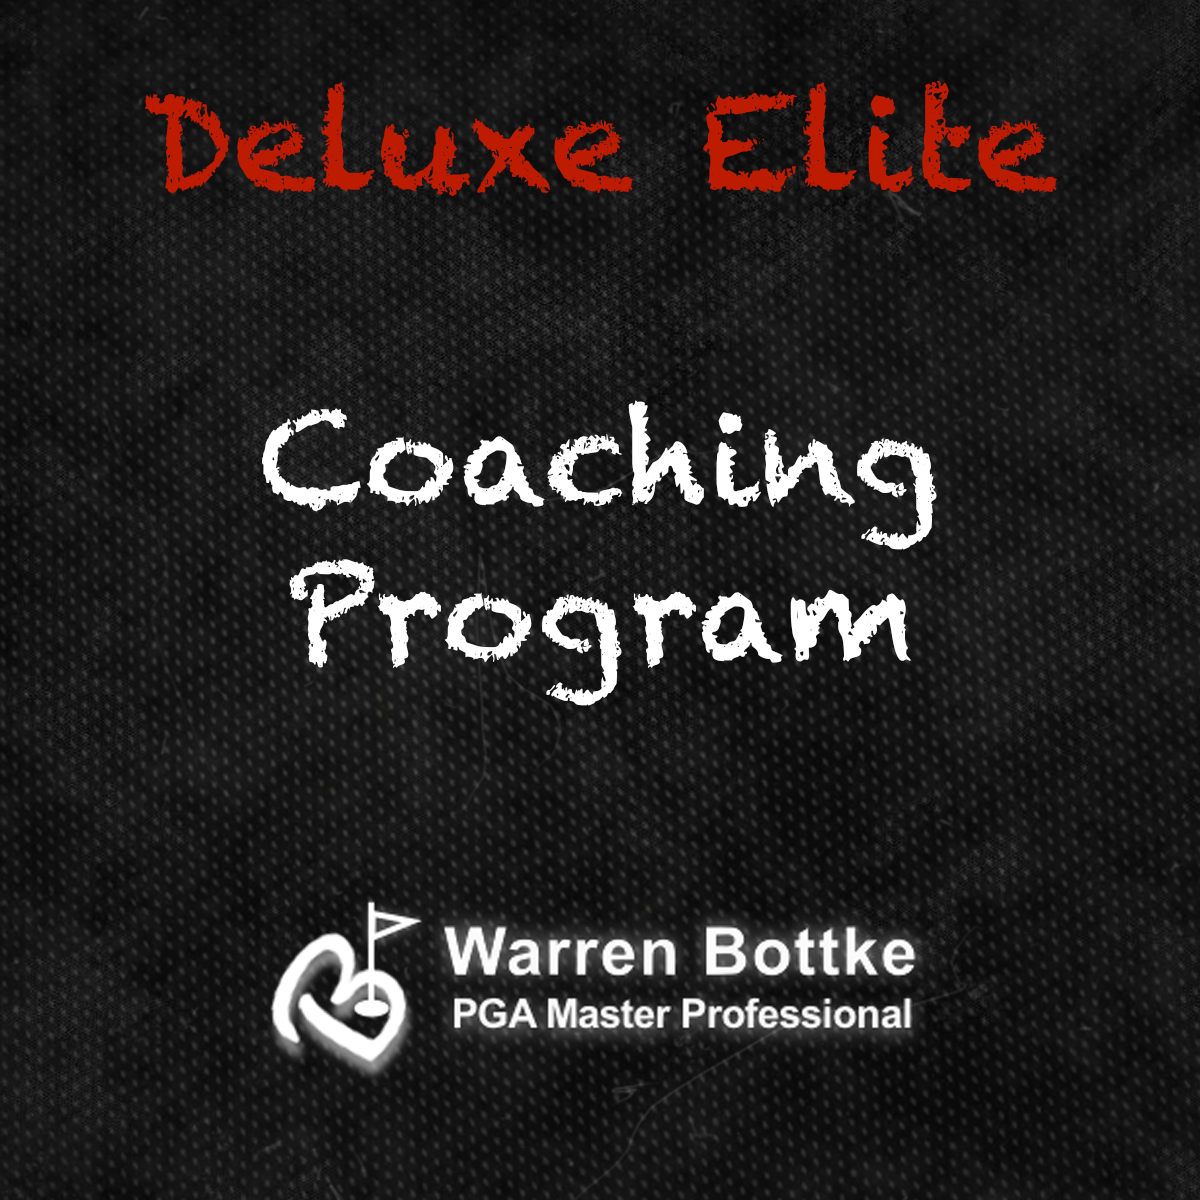 Deluxe Elite Coaching Program